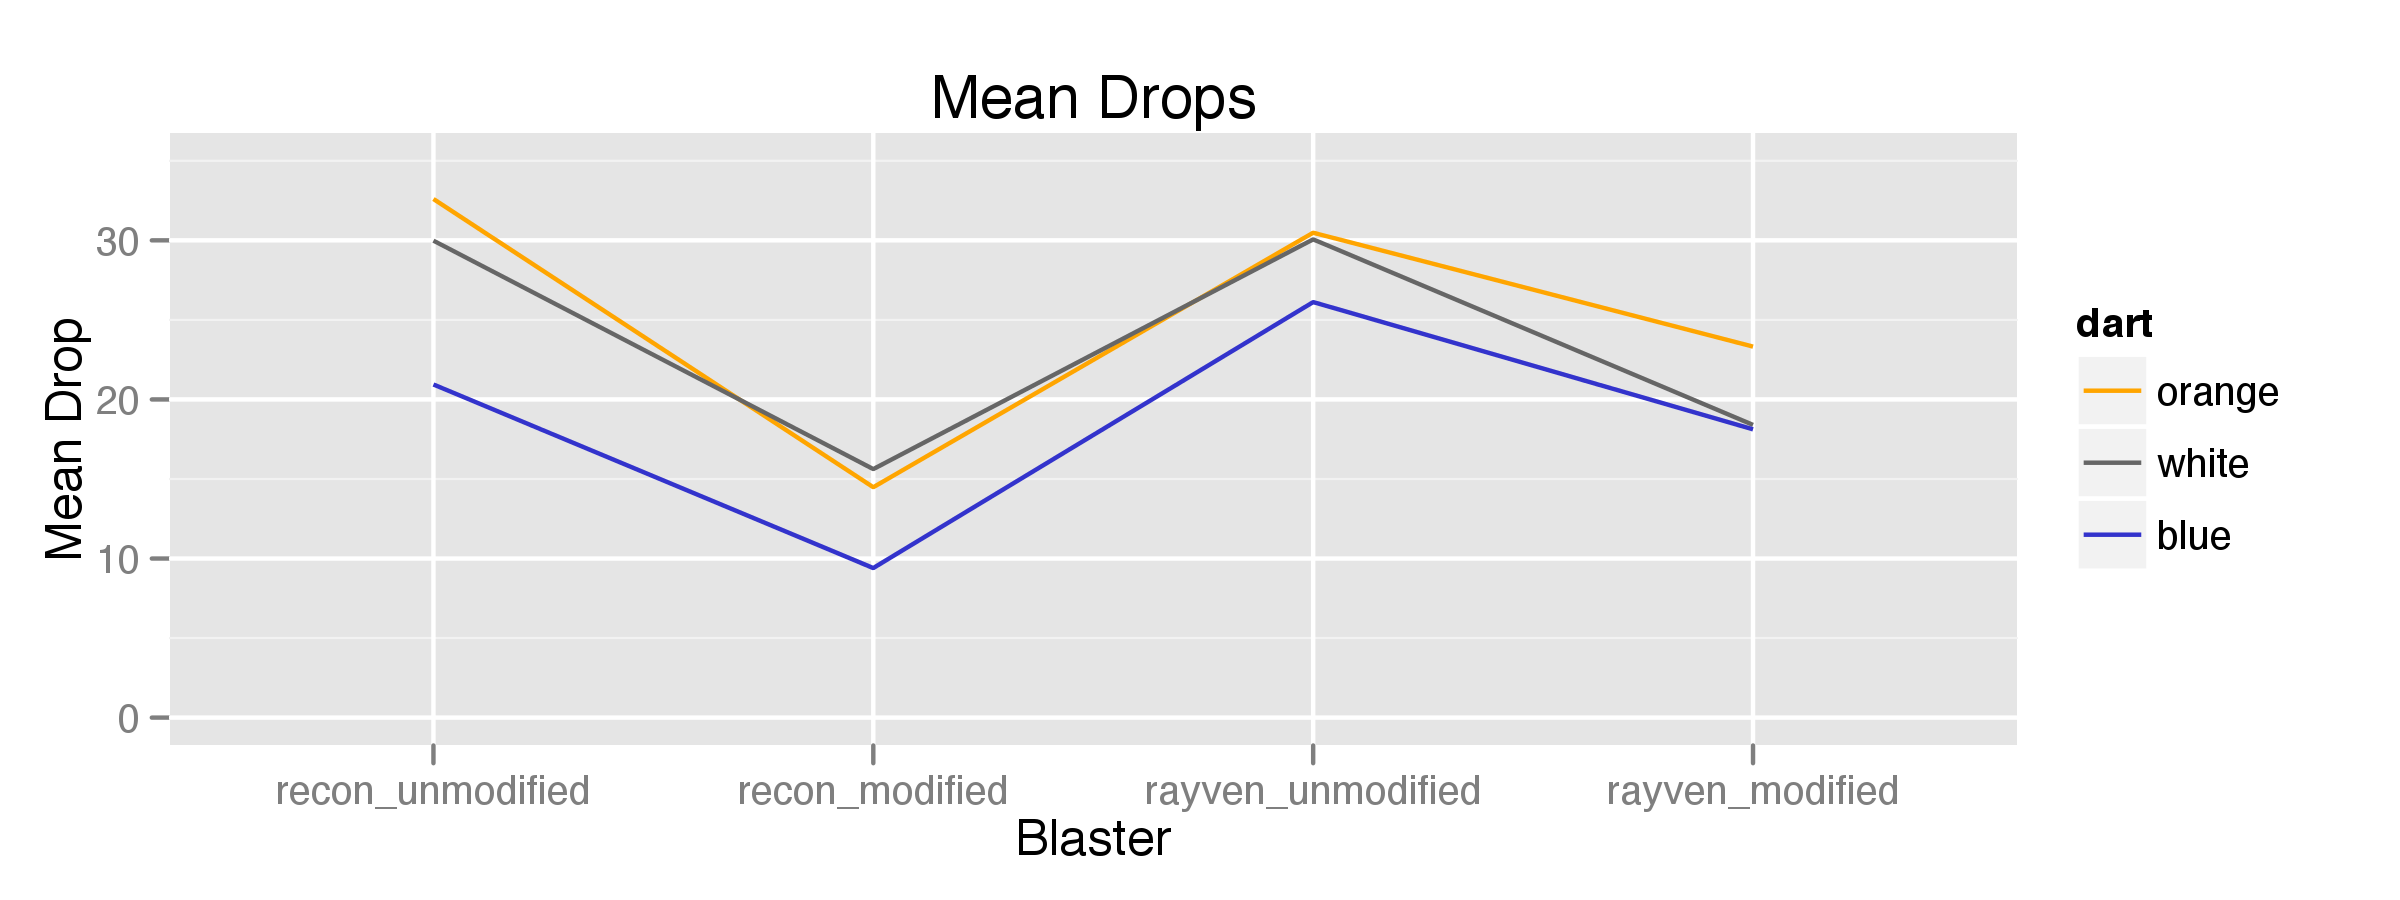 a statistical analysis of nerf blasters and darts shawn. Black Bedroom Furniture Sets. Home Design Ideas